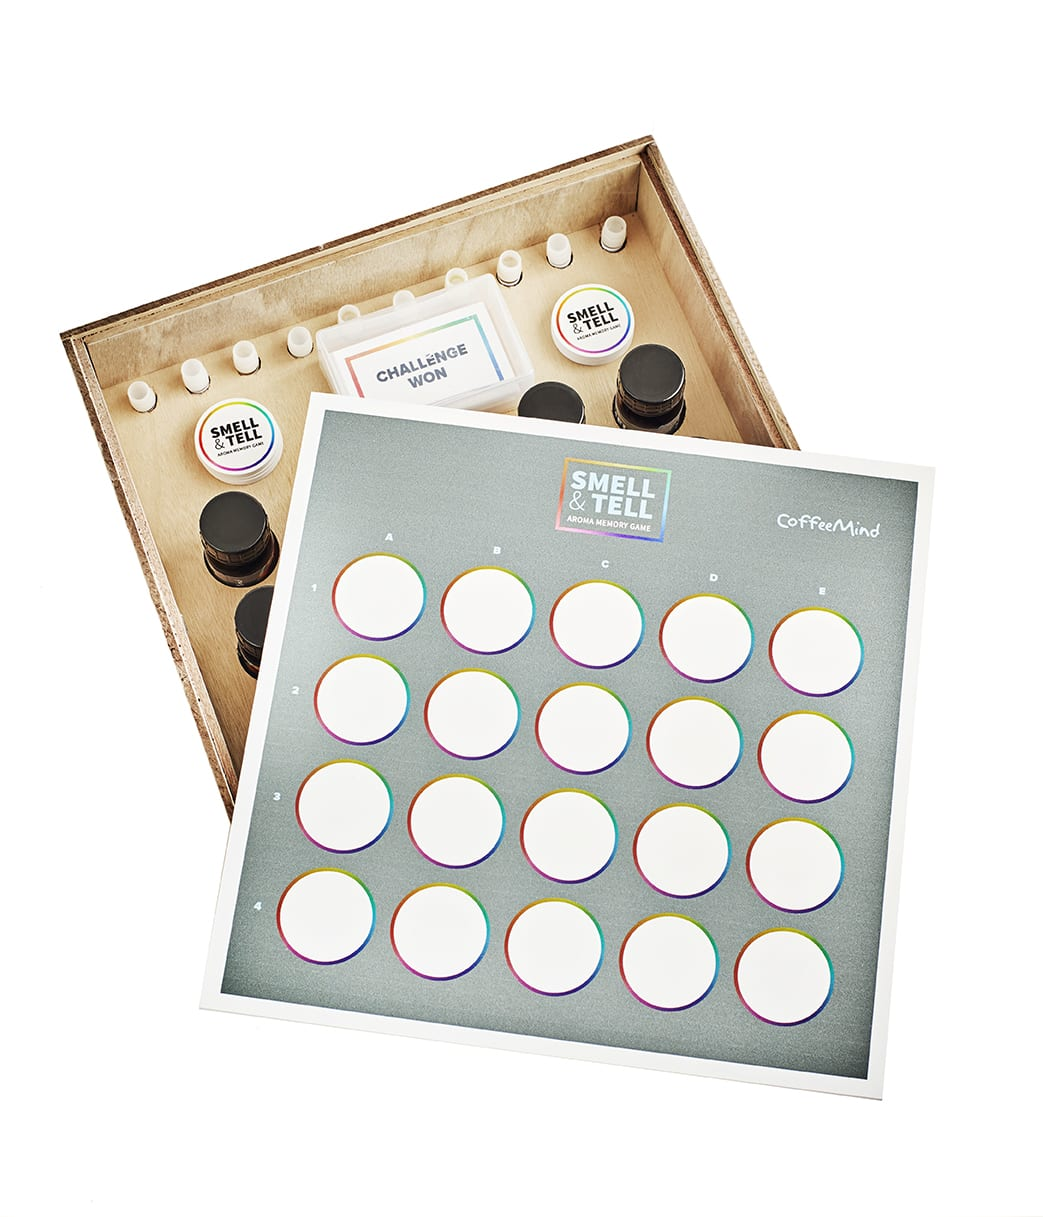 Smell tell aroma memory game pre order coffeemind smell tell aroma memory game solutioingenieria Choice Image